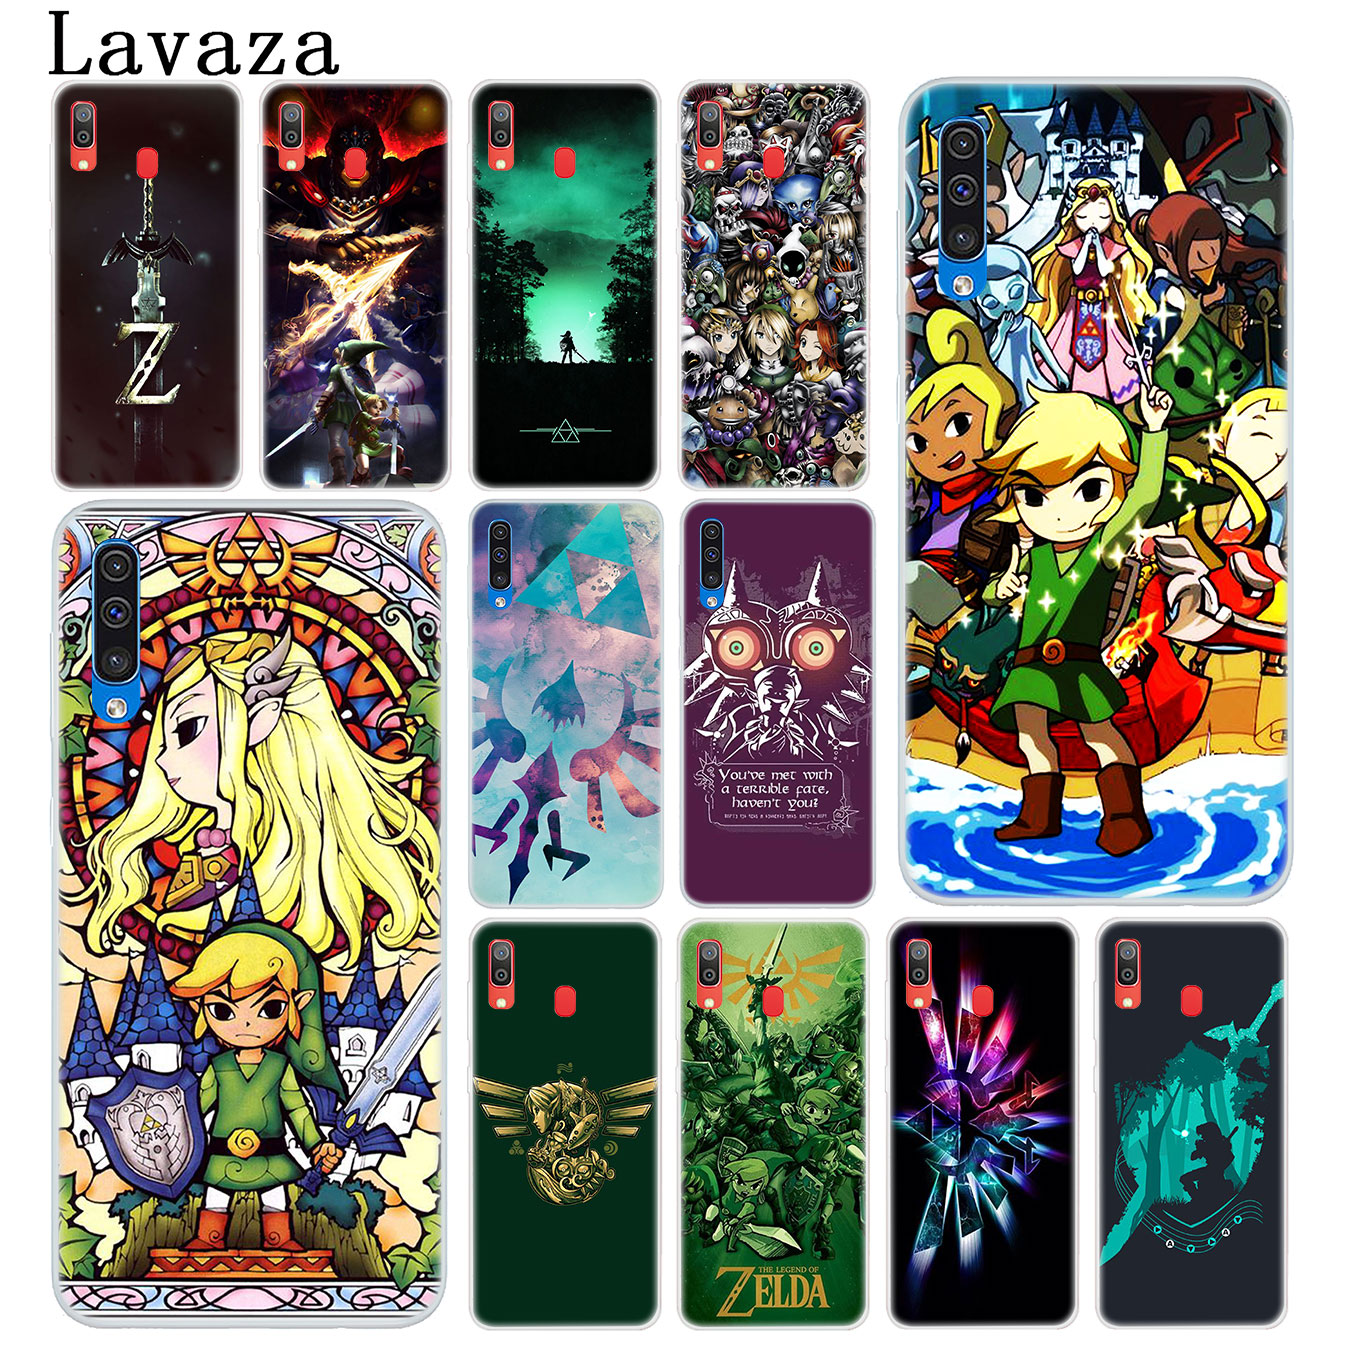 Lavaza Legend Of Zelda Hard Phone Case for Samsung Galaxy A10 A20 A30 A40 A50 A60 A70 M10 M20 M30 M40 A20e Cover image